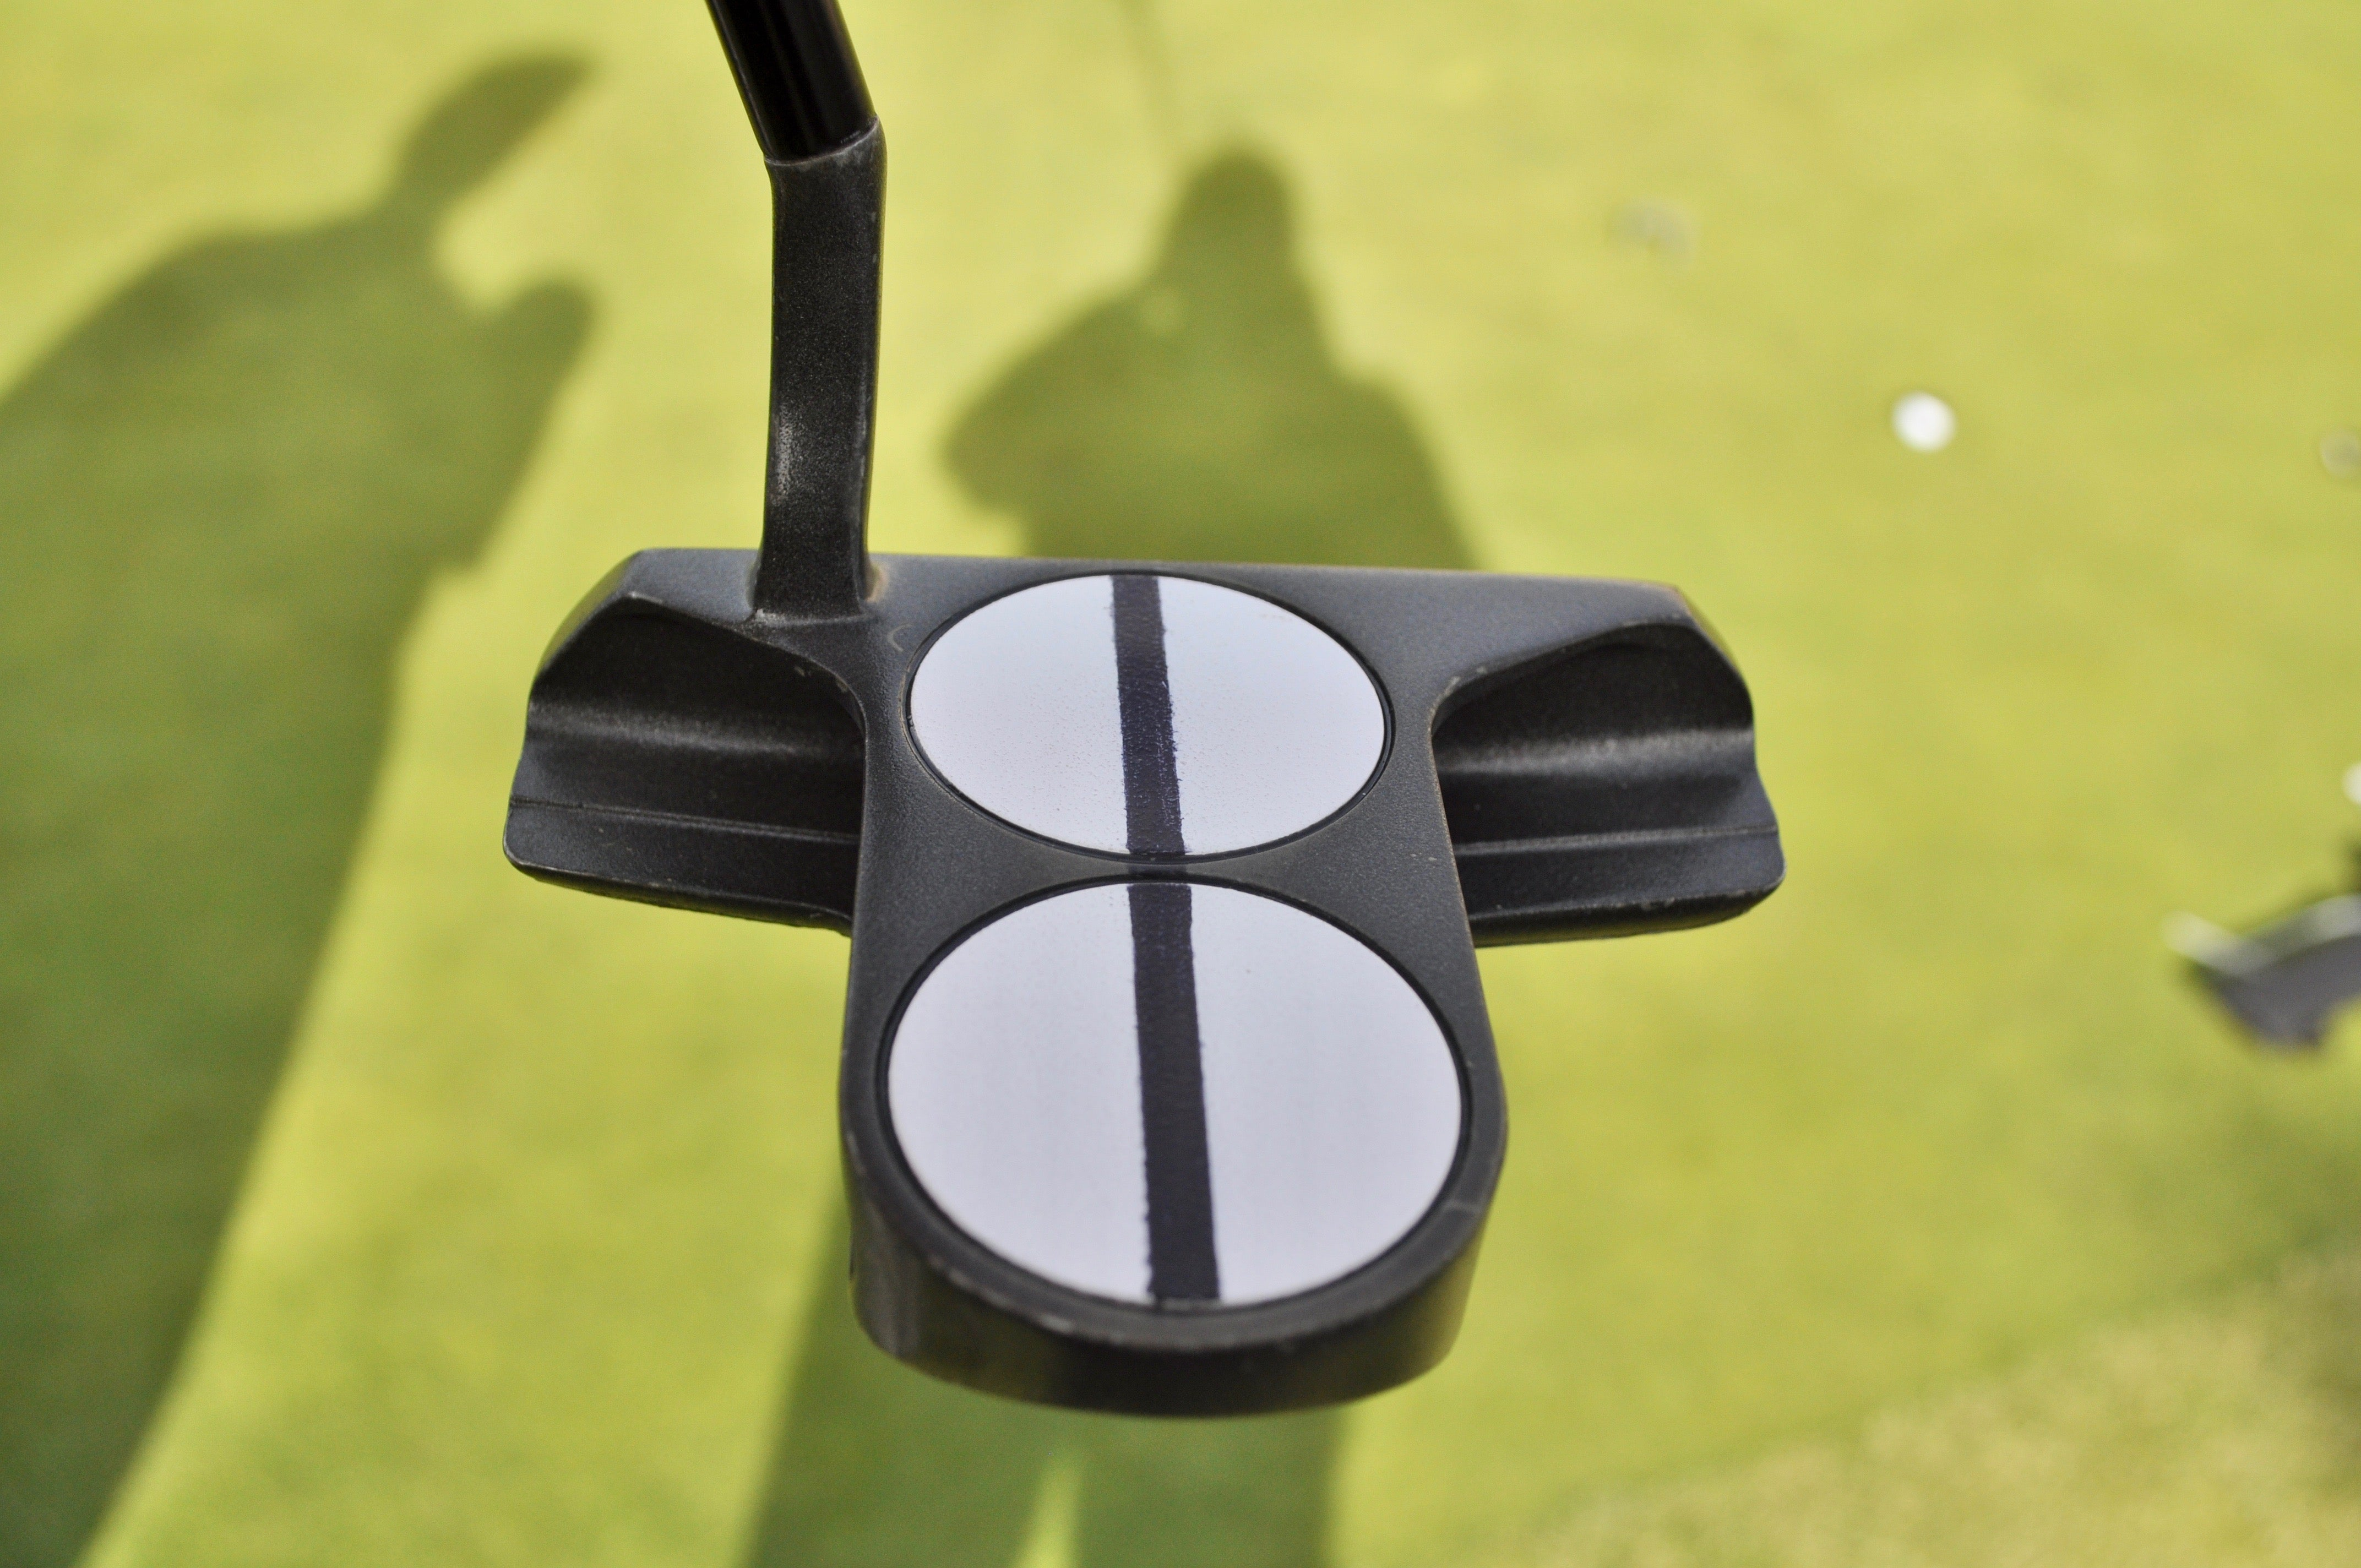 Tommy Fleetwood's caddie, Ian Finnis, used a black sharpie to add the alignment line to his Odyssey DFX 2-Ball putter.